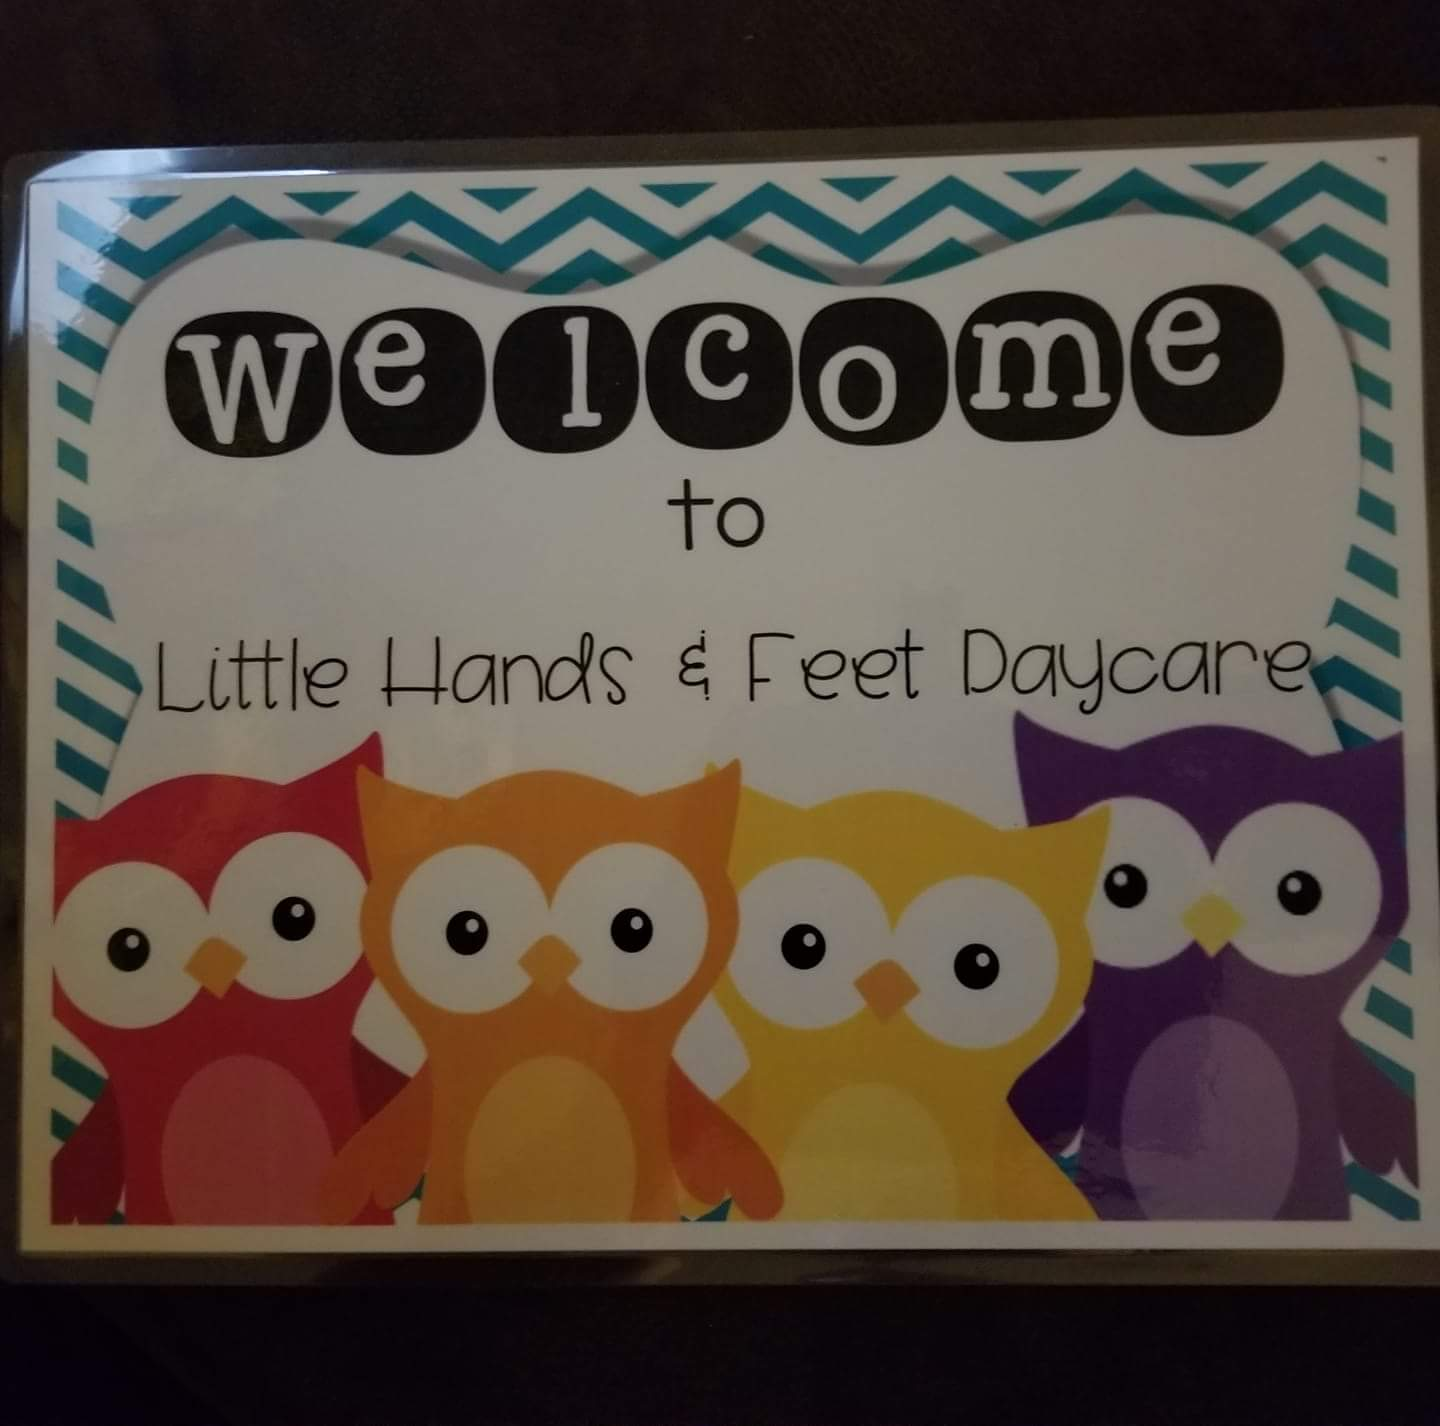 Little Hands and Feet Daycare